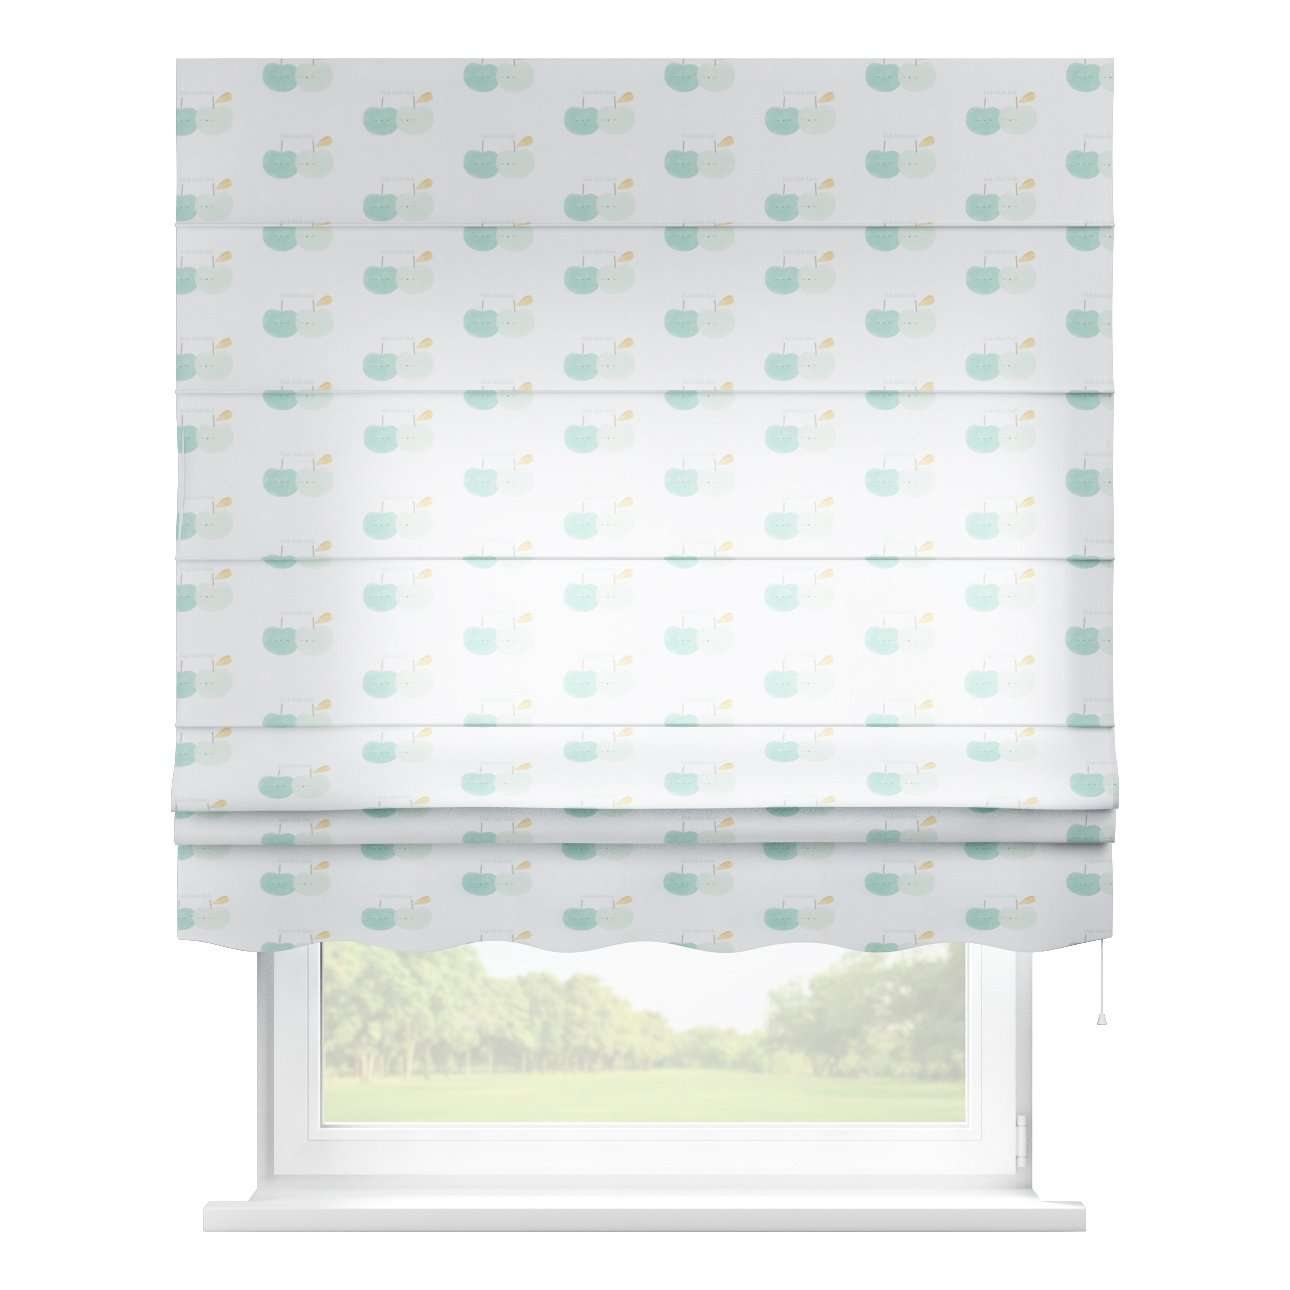 Florence roman blind  80 x 170 cm (31.5 x 67 inch) in collection Apanona, fabric: 151-02